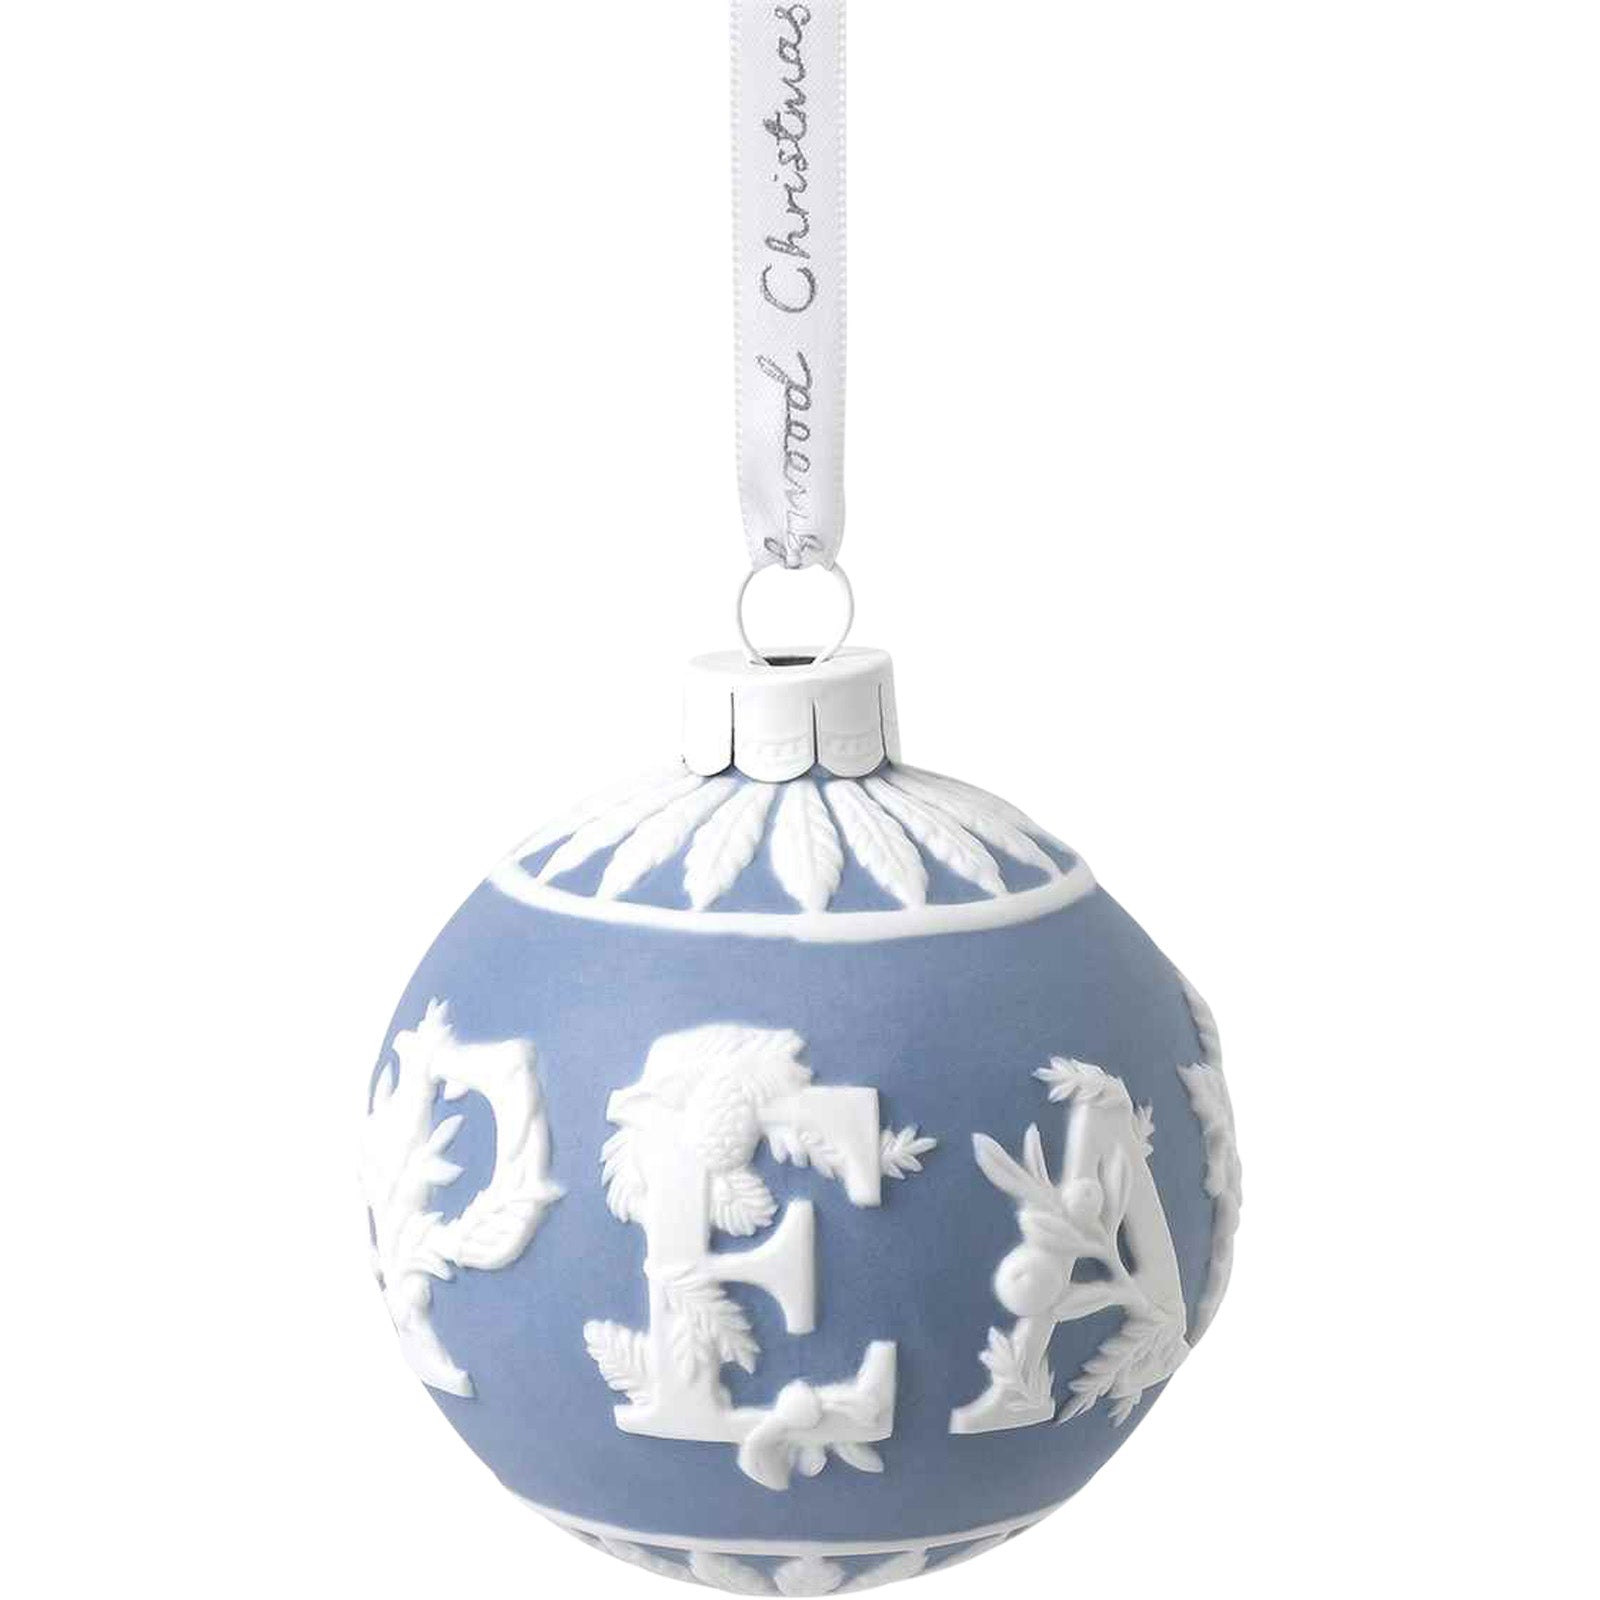 2020 Peace Christmas Bauble by Wedgwood — Christmas tree decoration - LuxDeco.com